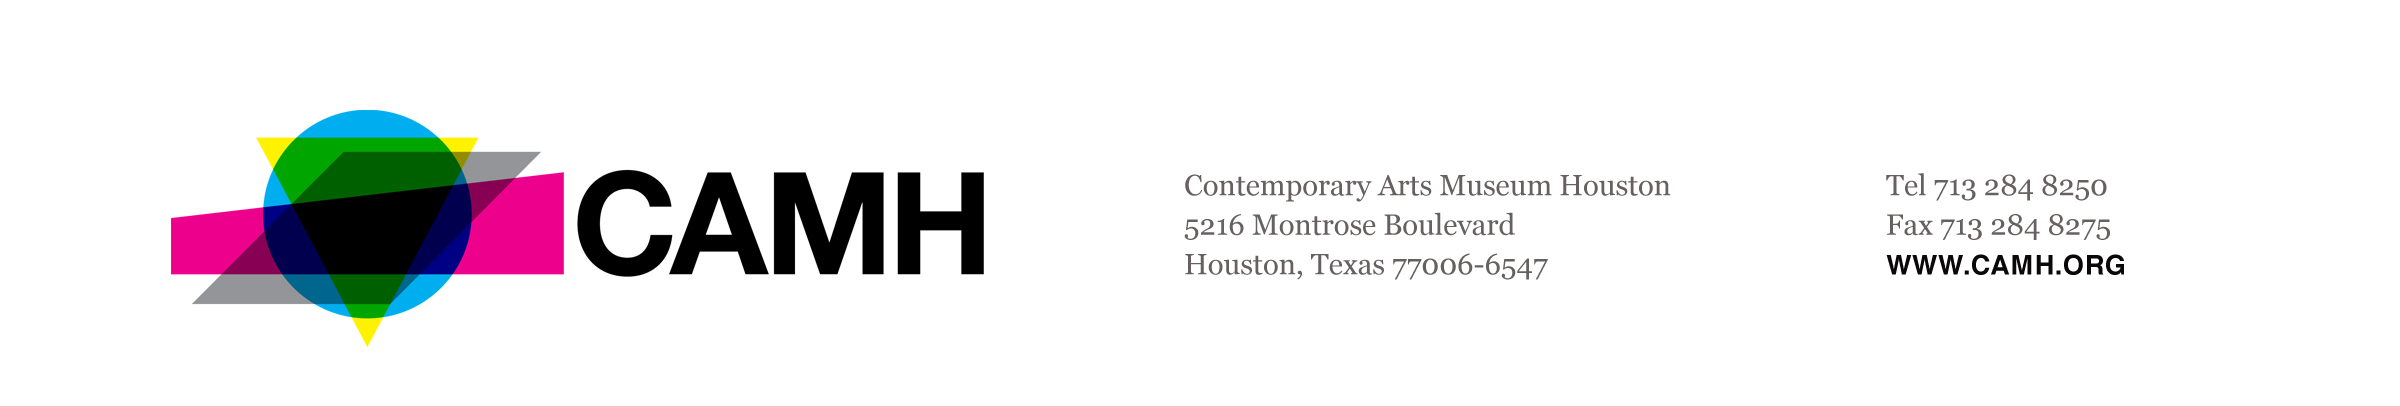 THE TEXAS CONTEMPORARY ART FAIR   SPONSORED BY THE CONTEMPORARY ARTS MUSEUM HOUSTON   PREVIEW BENEFICIARY  MADDOX GALLERY • BOOTH C19   TEXAS CONTEMPORARY ART FAIR 2016   TX CONTEMPORARY   SPONSORED BY: CONTEMPORARY ARTS MUSEUM HOUSTON   MASSIMO AGOSTINELLI   